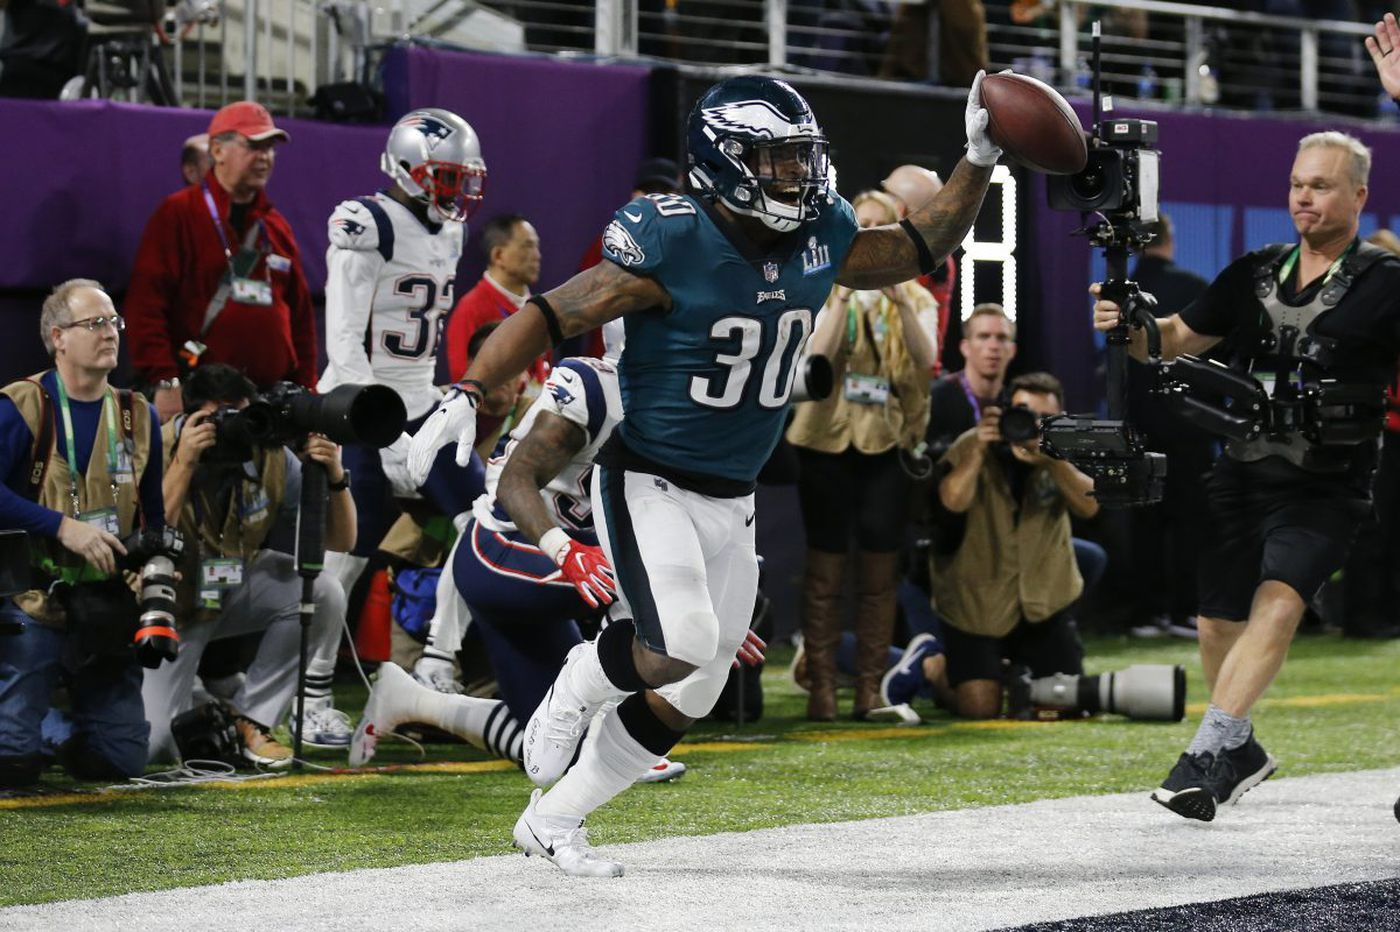 Eagles' Corey Clement part of Super Bowl history now | Mike Jensen